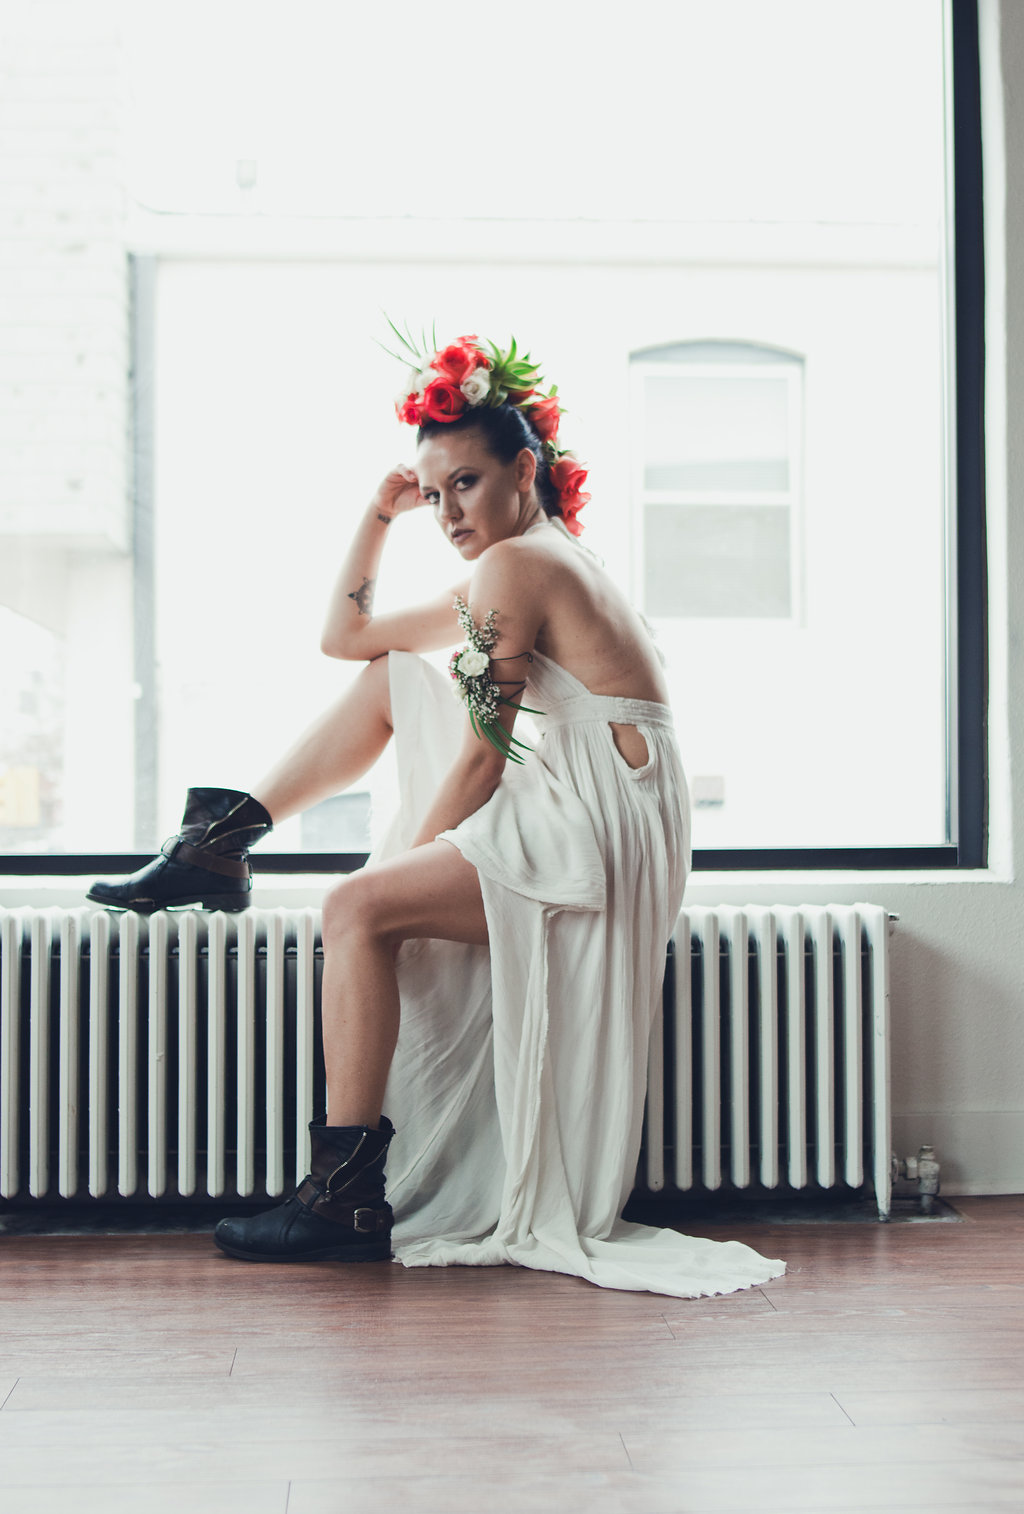 Lisa Rundall Wedding Photography Colorado model sitting with leg up on wall heater